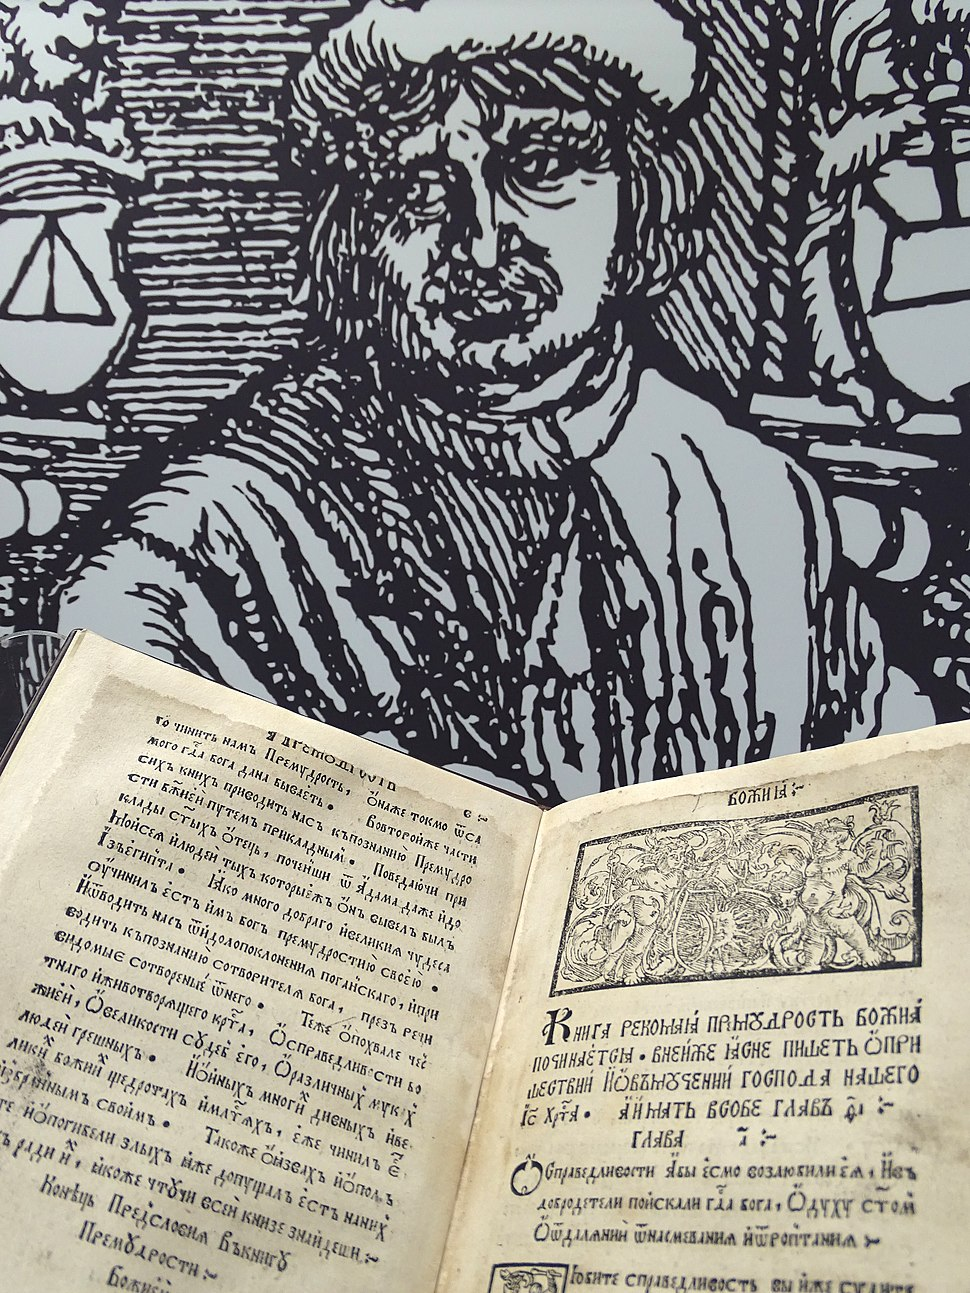 1518 Printed Volume of Bible by Francisk Skoryna - With Portrait of the Printer - Book Museum - National Library - Minsk - Belarus (27474519651)